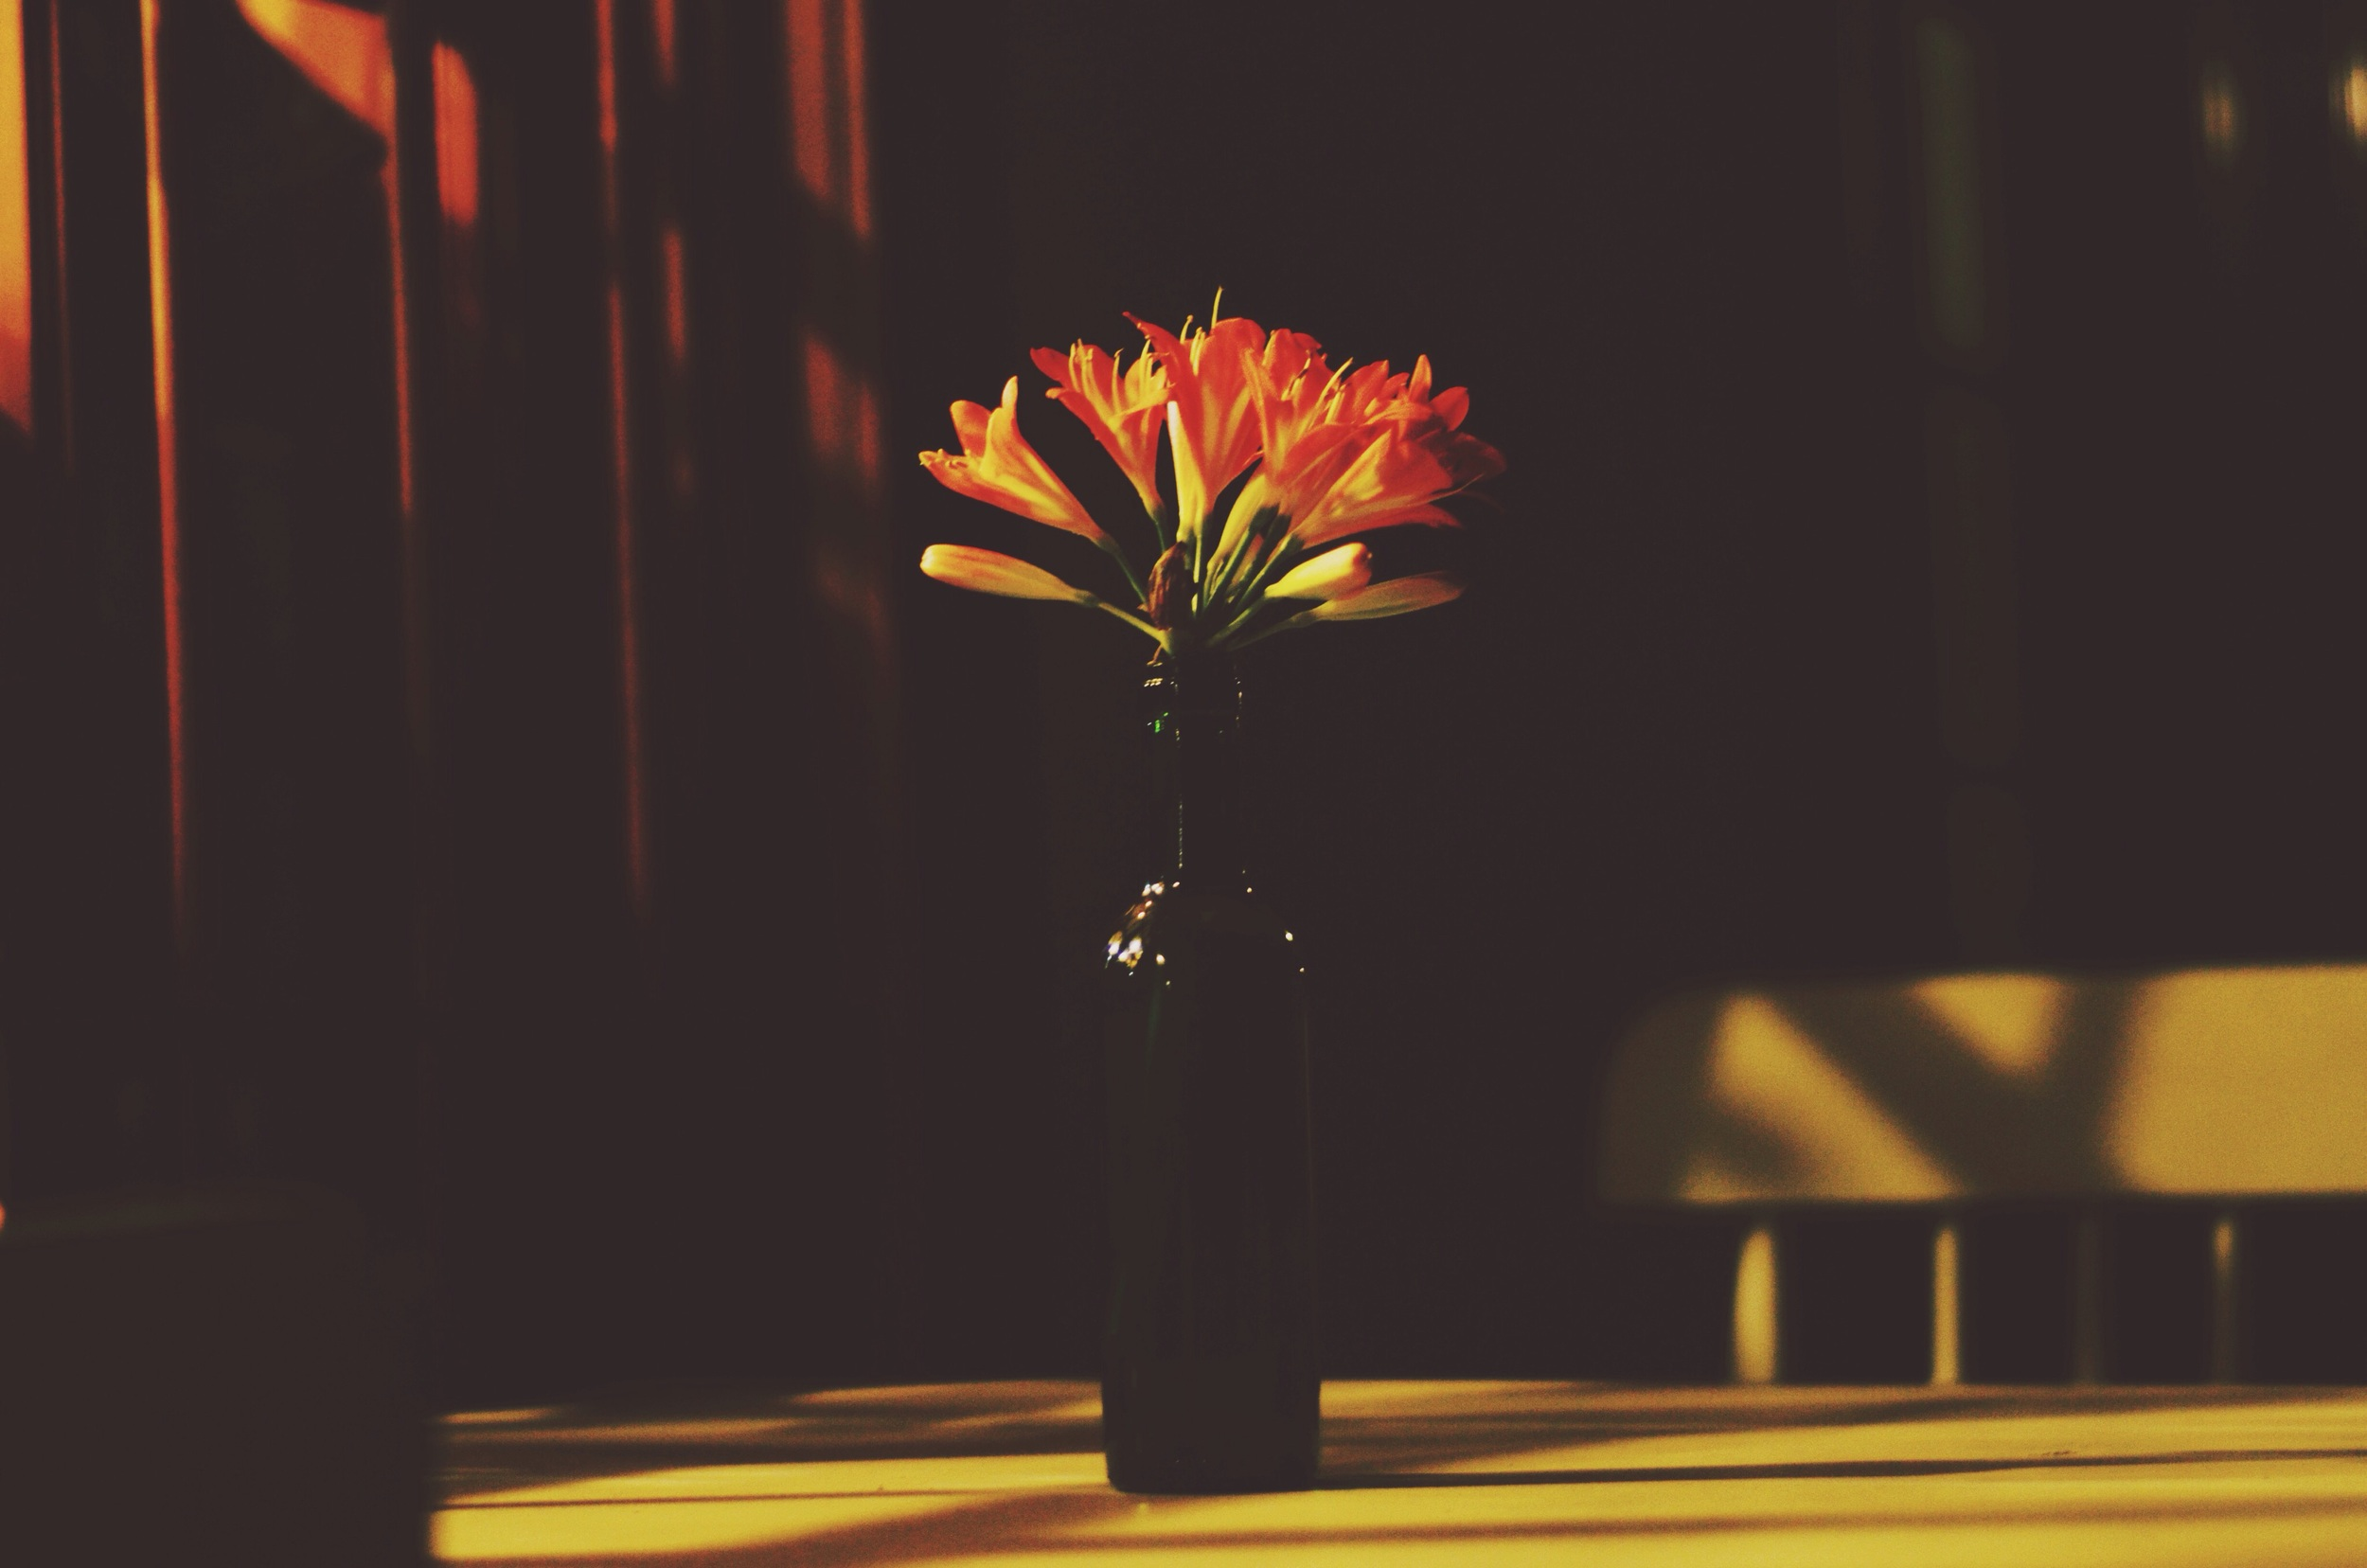 Vase of flowers in the shadows of the vineyard's shop lights // 29 may